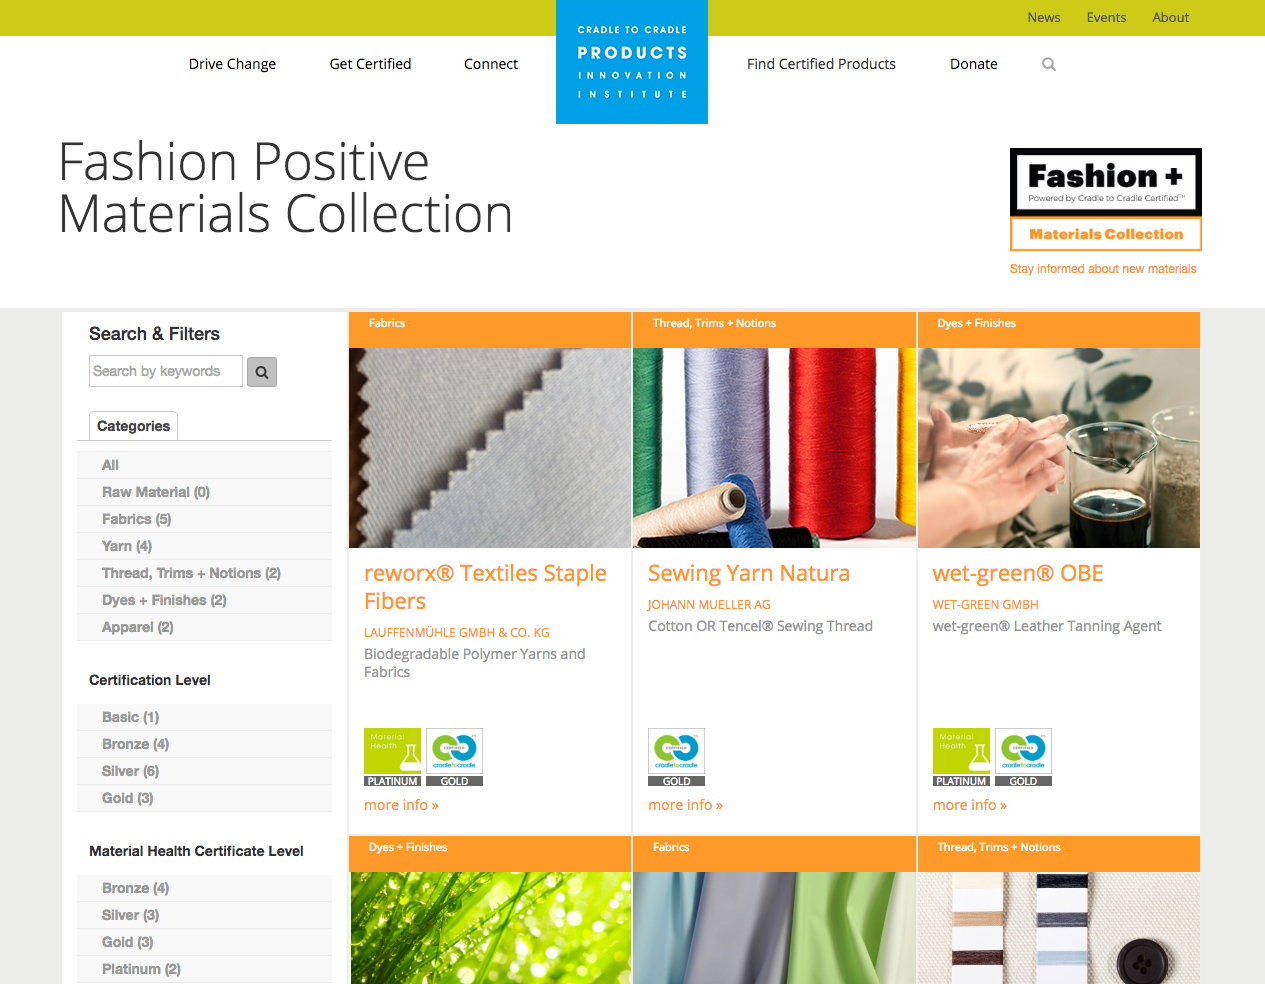 Fashion Positive Materials Collection